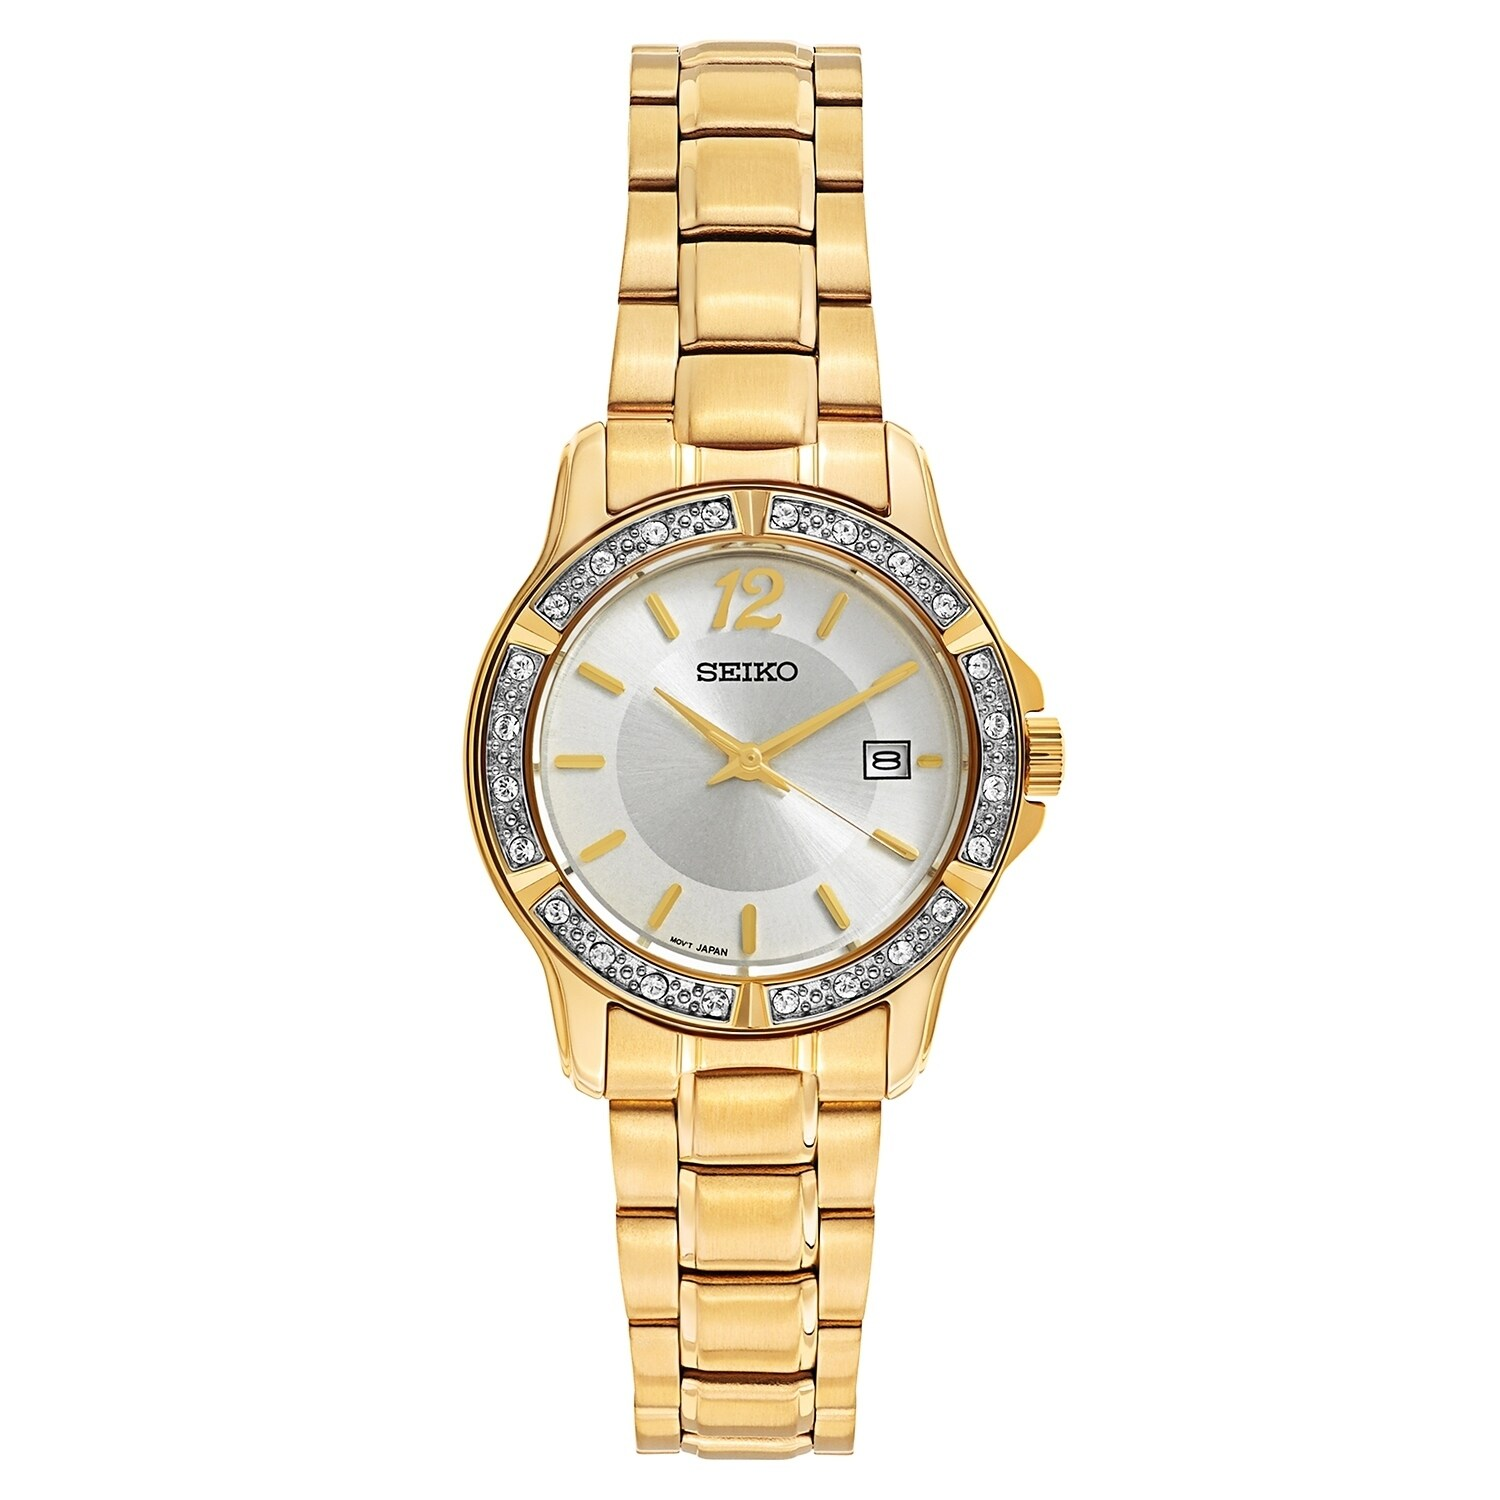 Seiko Women's SUR714 Stainless Steel and Crystal watch wi...